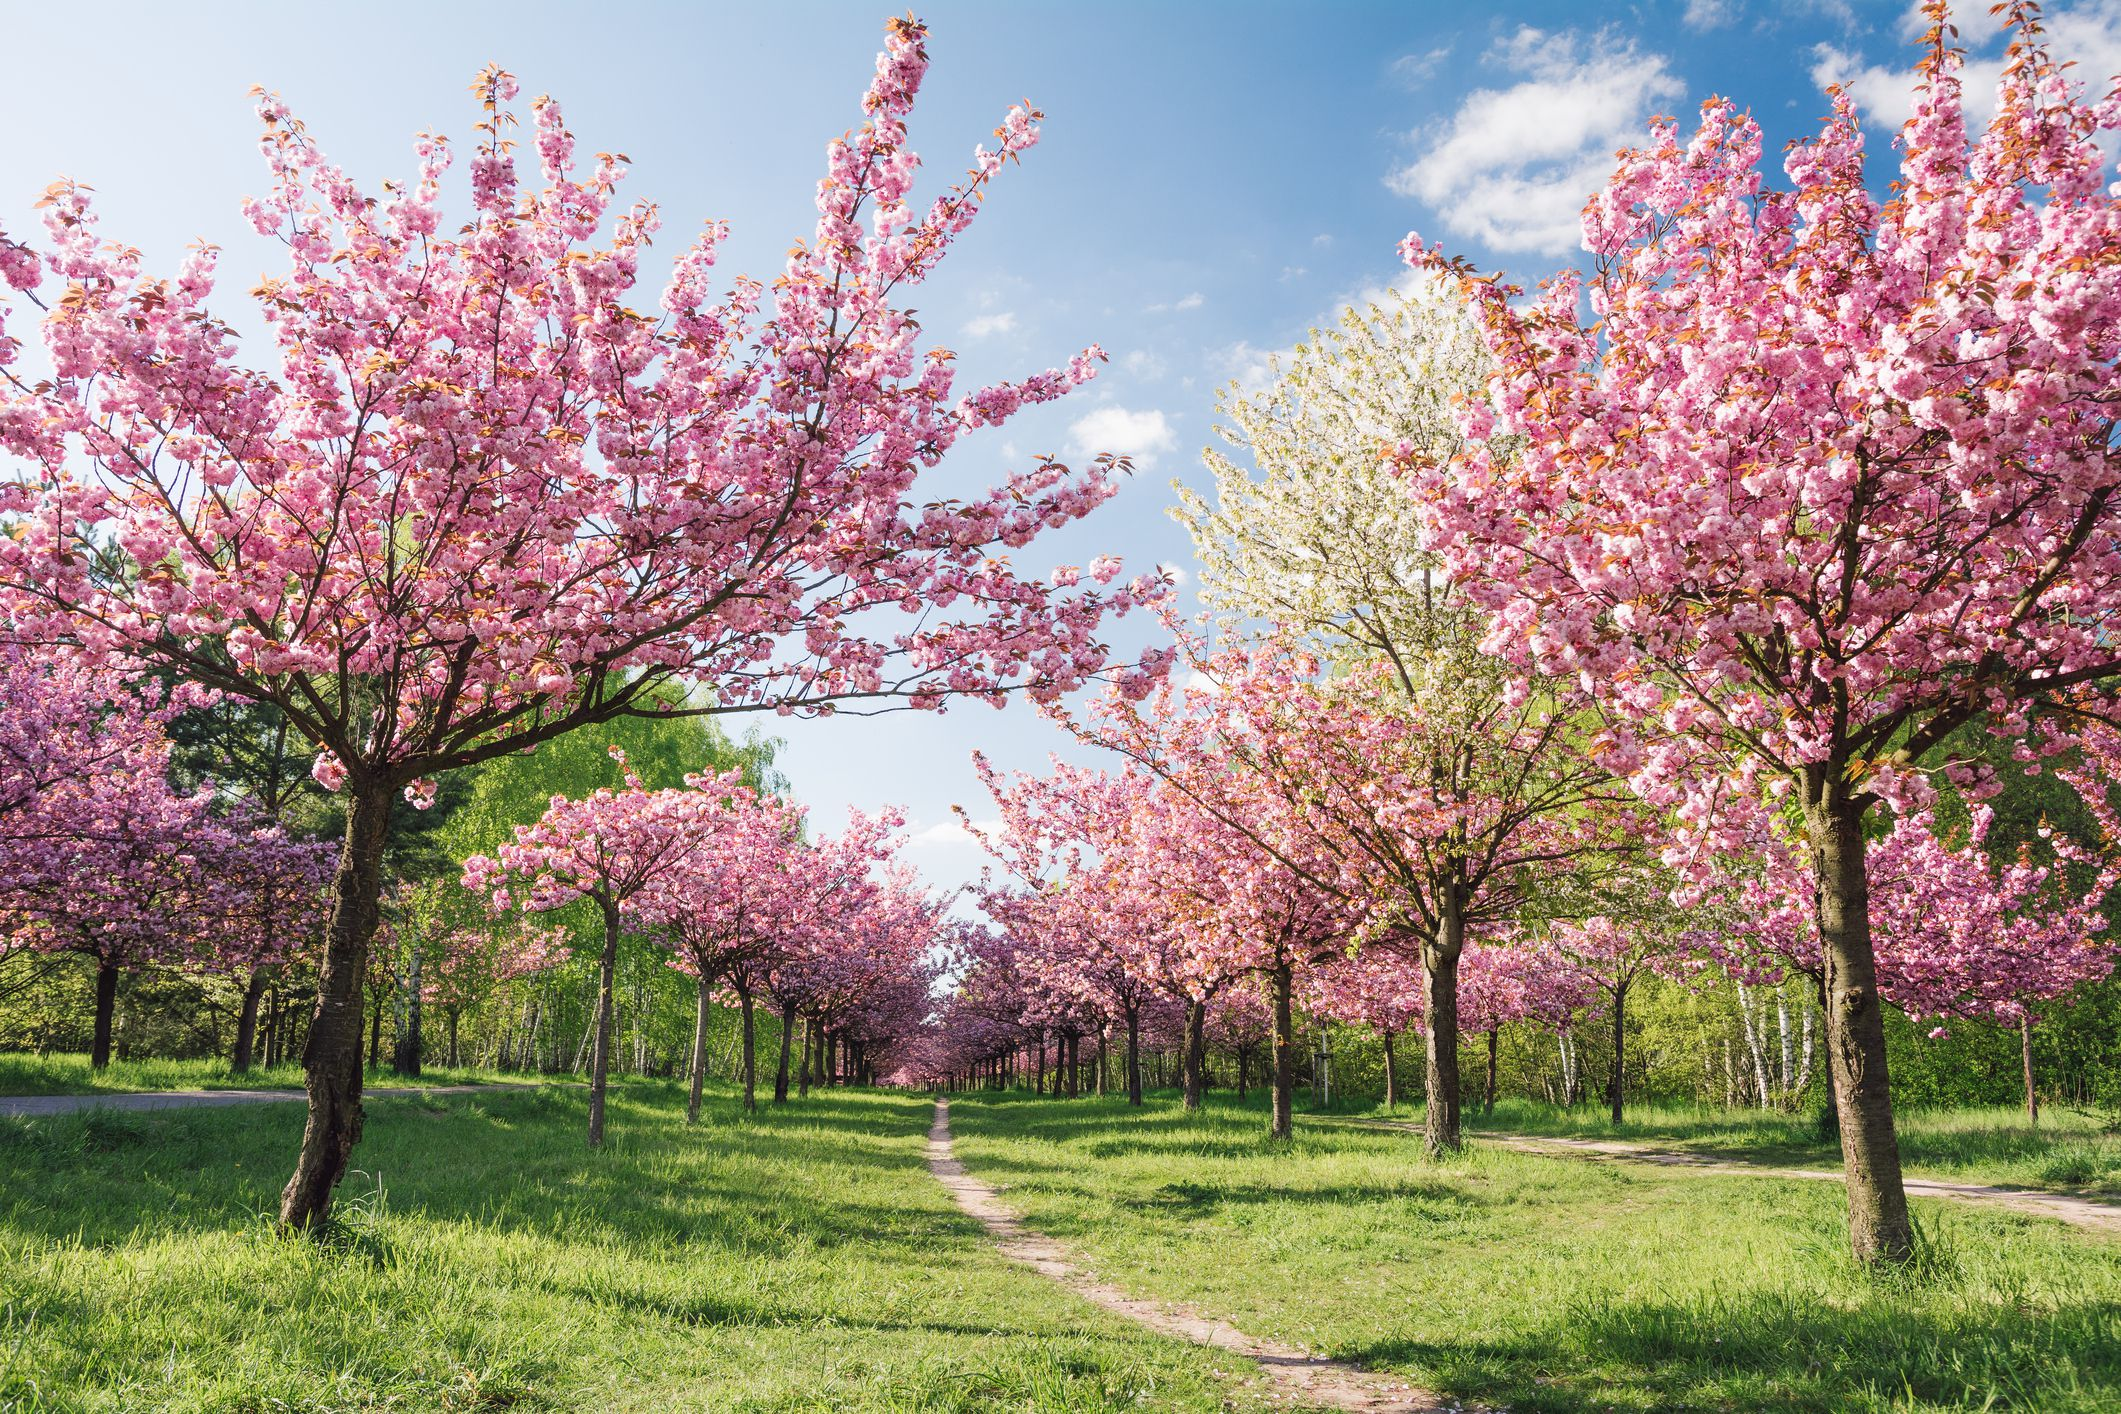 Best Places to View Cherry Blossoms in Germany